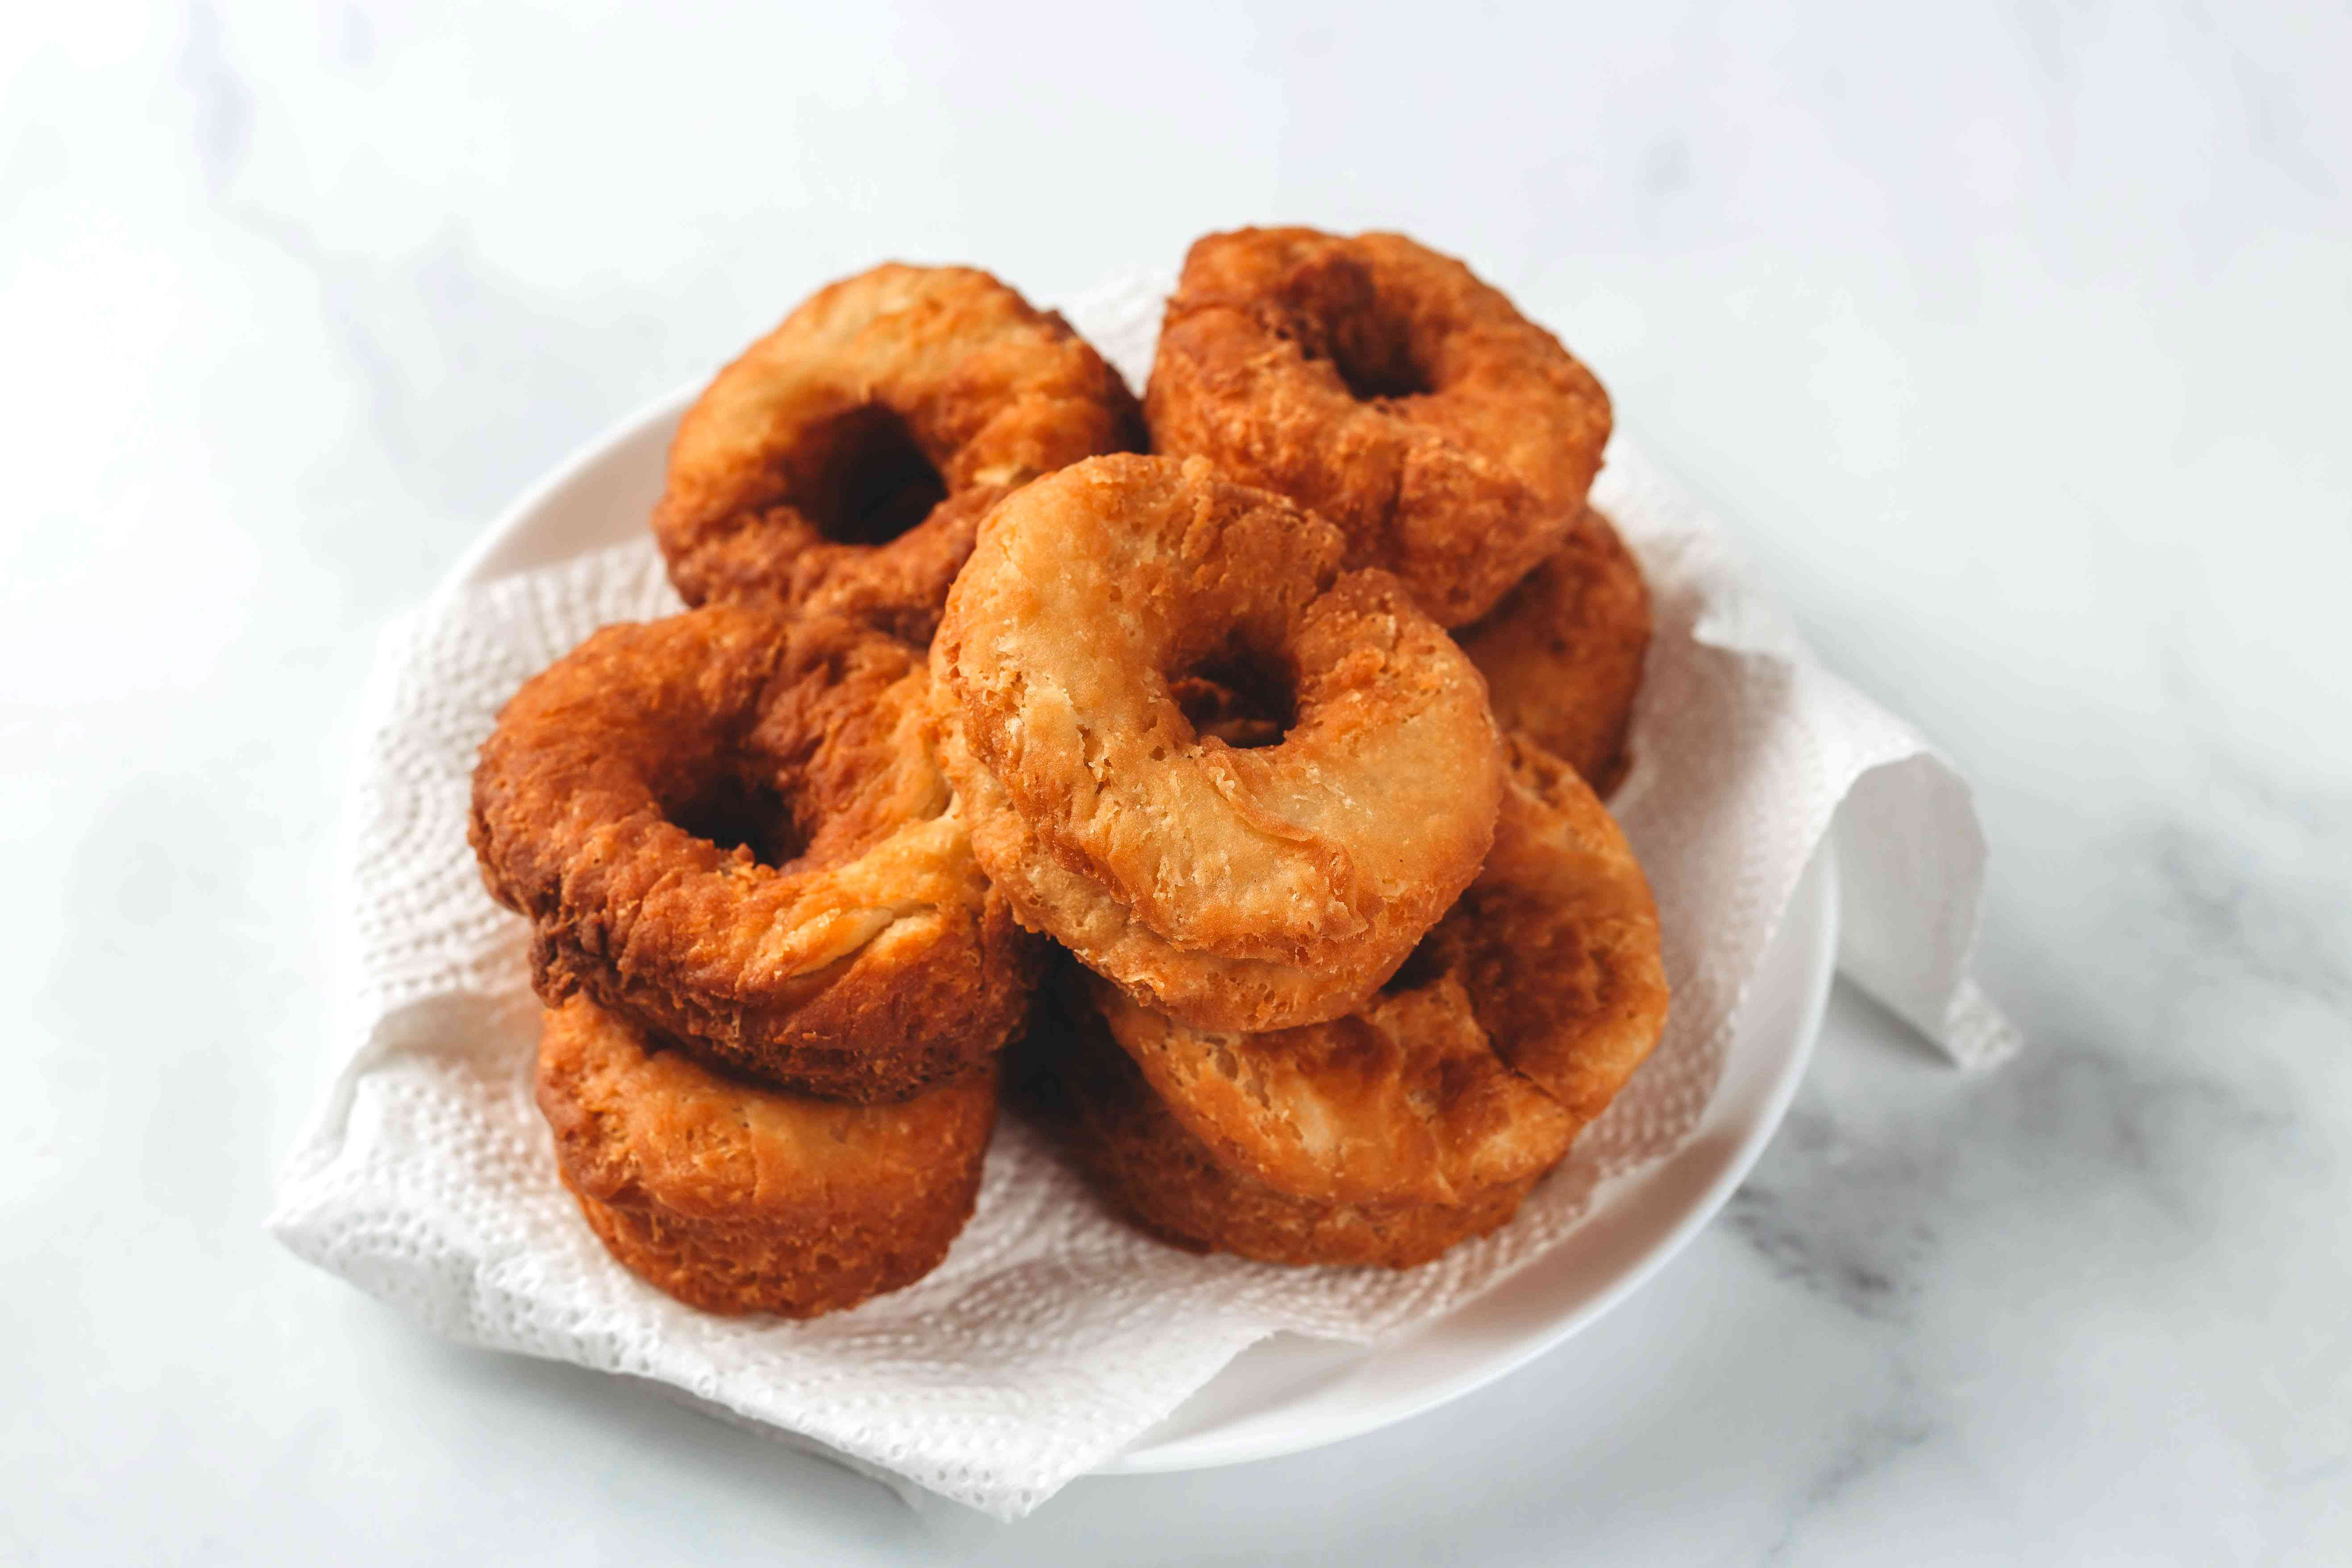 fried Cronuts on a paper towel